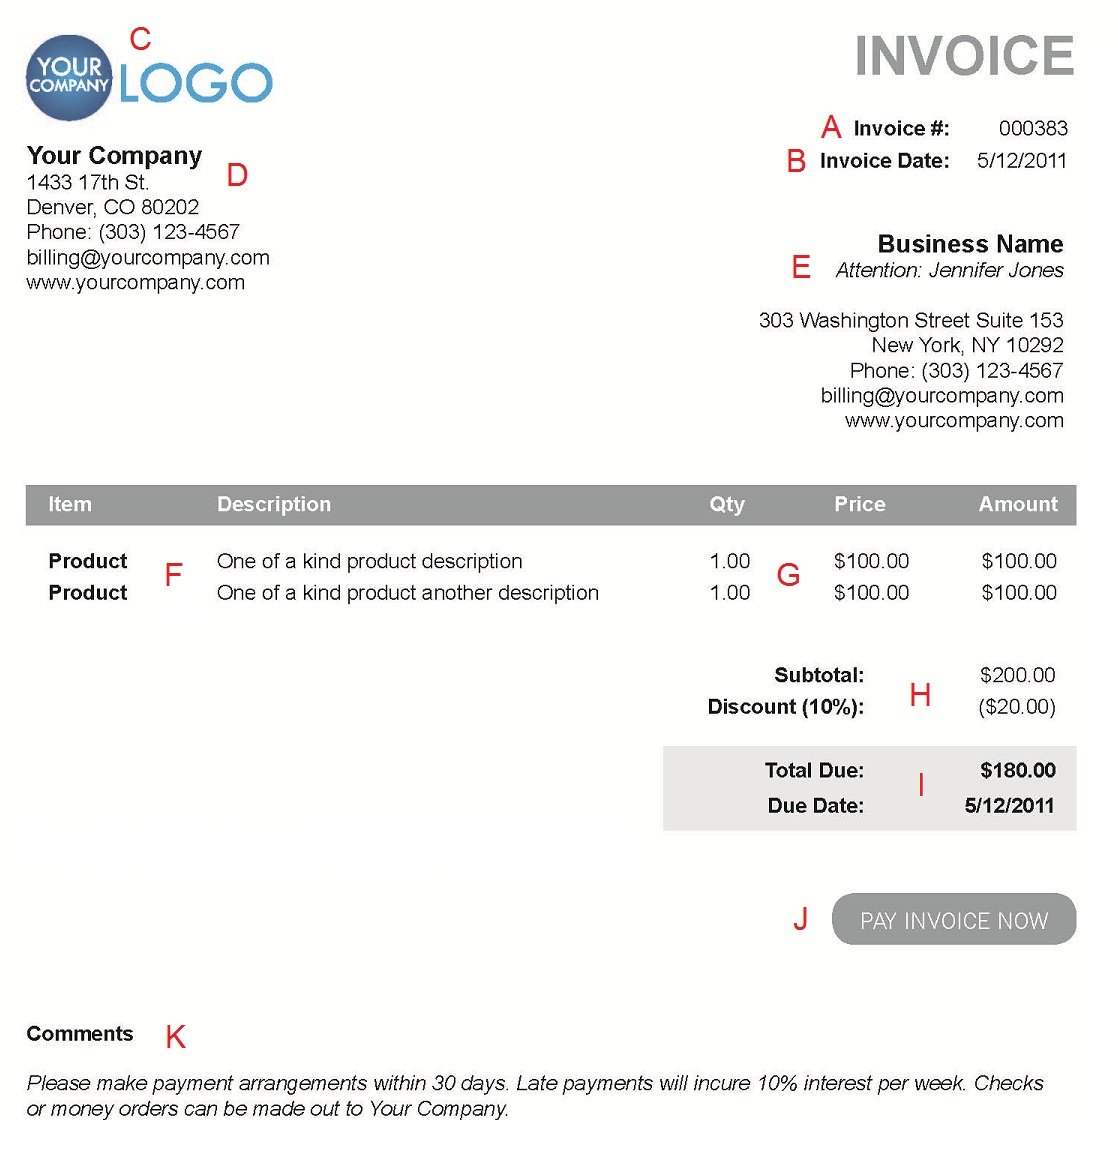 Centralasianshepherdus  Unique The  Different Sections Of An Electronic Payment Invoice With Outstanding A  With Attractive Einvoicing Also Performa Invoice In Addition Difference Between Invoice And Receipt And Invoice Journal As Well As Google Docs Invoice Additionally Pdf Invoice Template From Paysimplecom With Centralasianshepherdus  Outstanding The  Different Sections Of An Electronic Payment Invoice With Attractive A  And Unique Einvoicing Also Performa Invoice In Addition Difference Between Invoice And Receipt From Paysimplecom